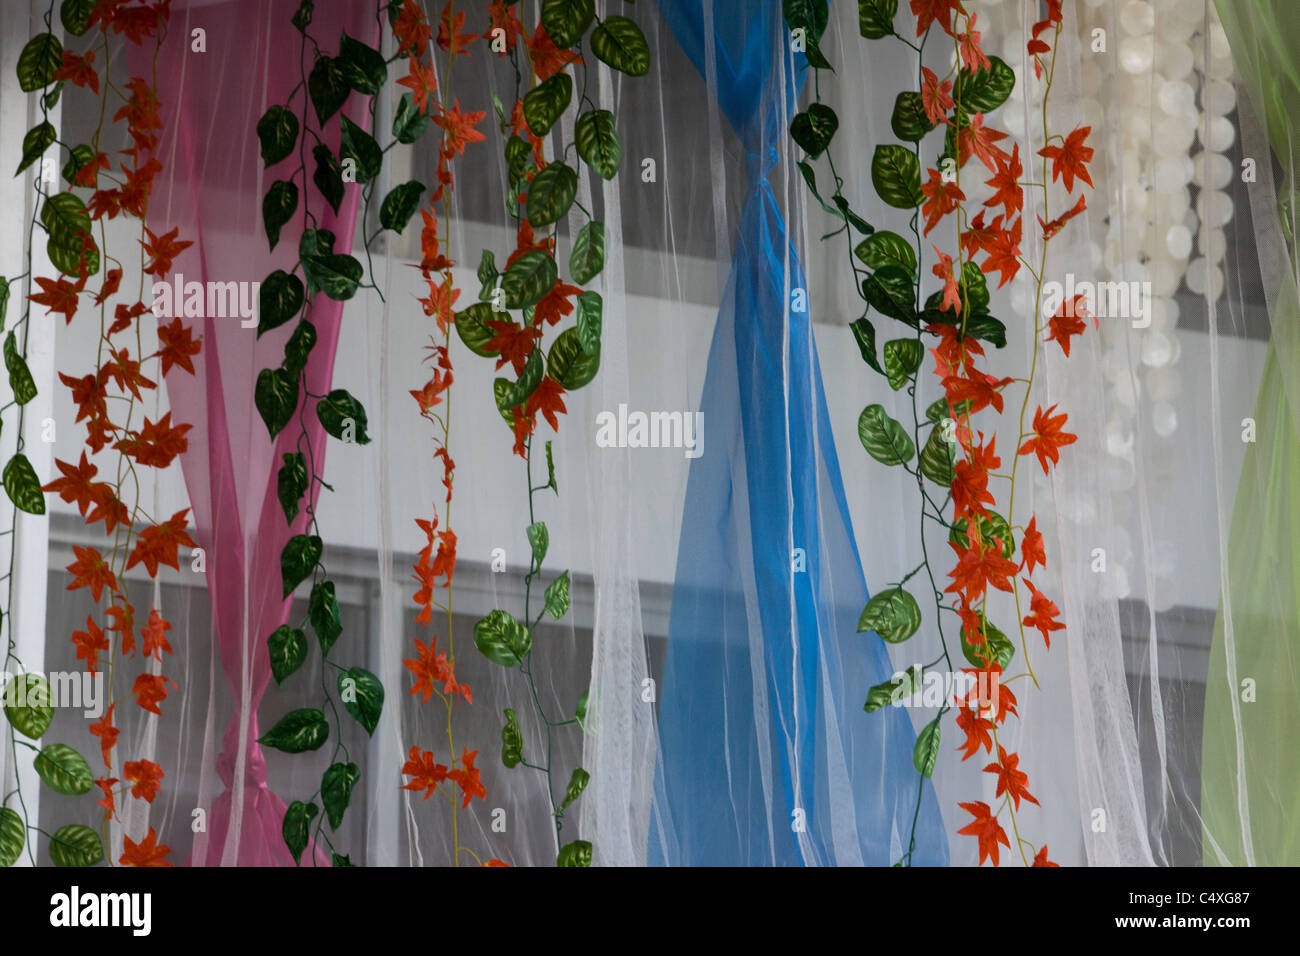 net curtains and flowers - Stock Image